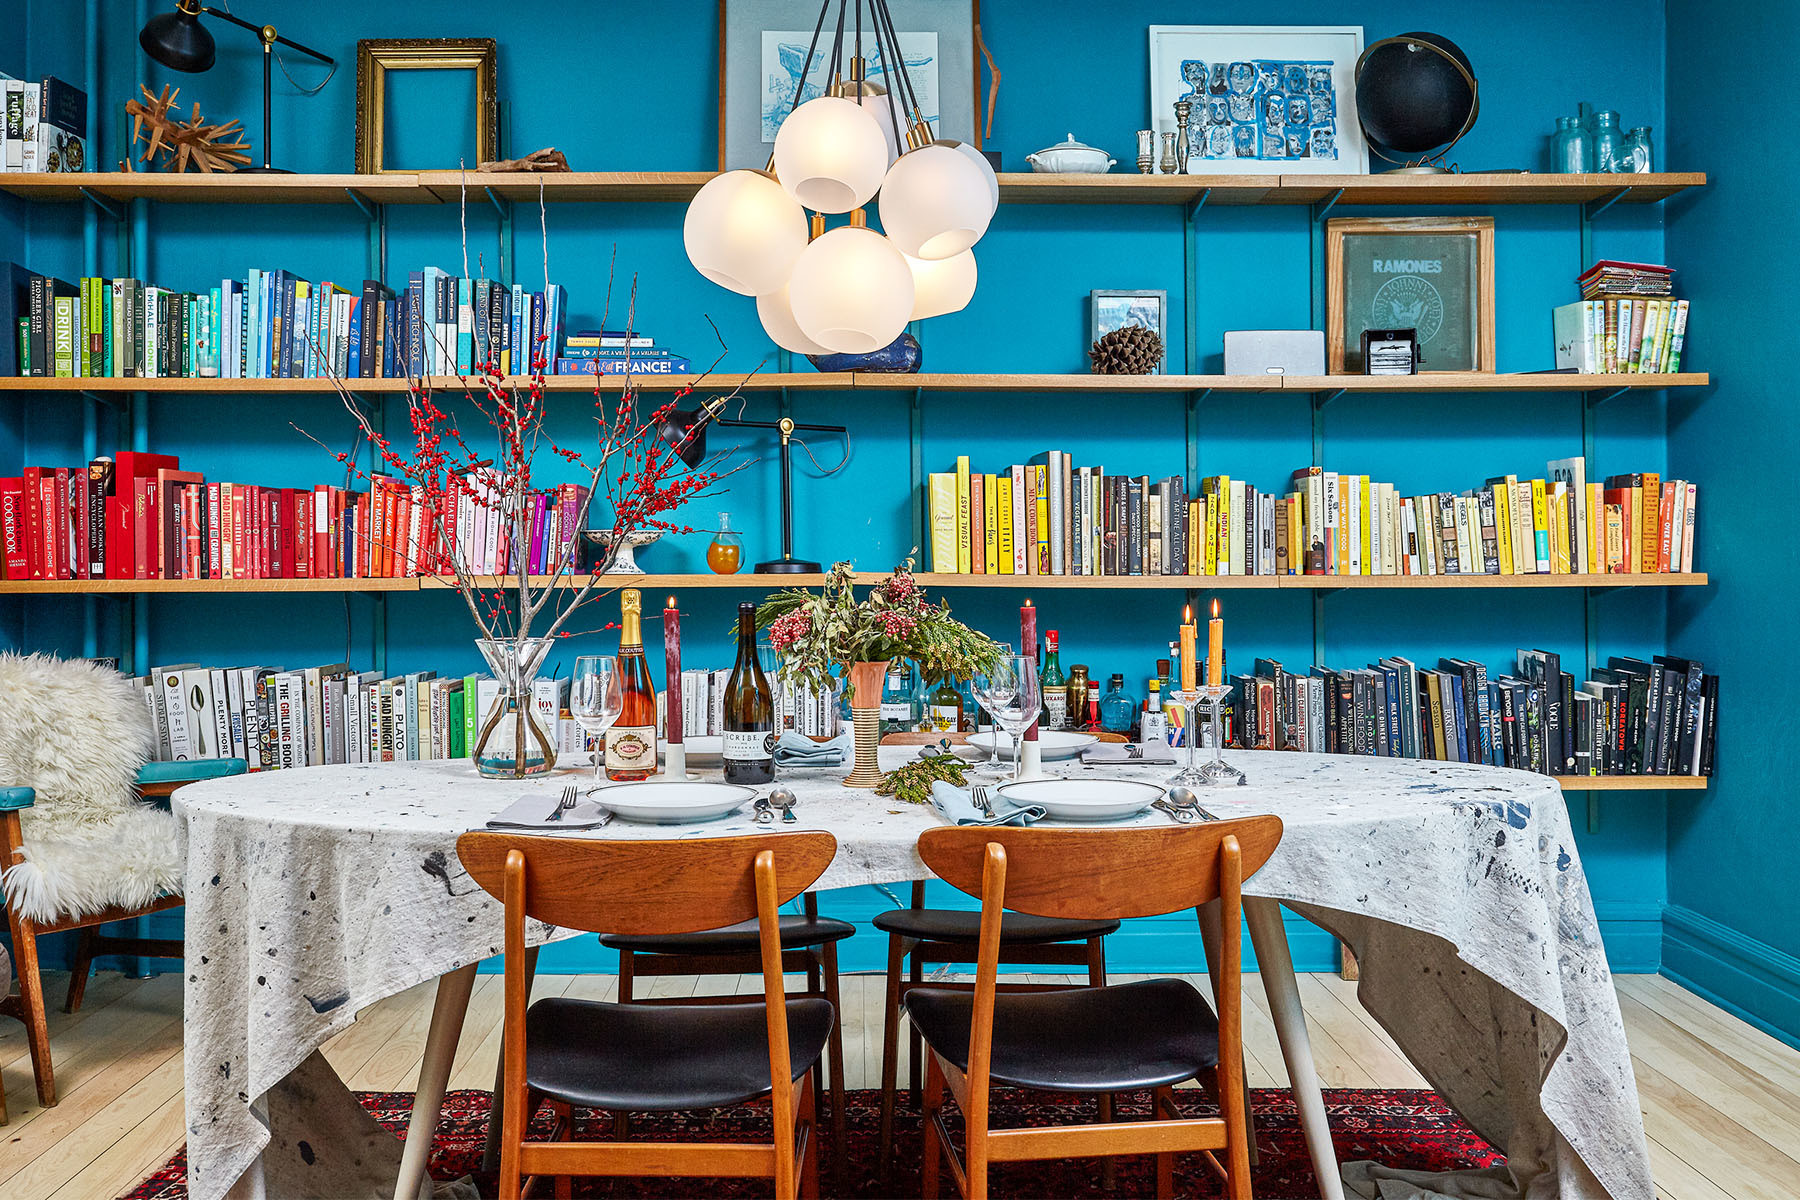 New York-based cookbook author and passionate home cook Colu Henry admits the dining room is her favorite space, awash in turquoise paint.Benjamin Moore Paint |CB2 Chandelier | Vintage Armchair |Sheepskin Town Sheepskin |Sferra Napkins |Crate & Barrel Cutlery |Laguiole Steak Knives |Danica DesignCandles |Chad Silver Design Dining Table |Chairish Dining Chairs |Chad Silver Design Tablecloth |Jenni Kayne Candlestick Holders | Vintage Accent Pieces | Vintage Silkscreen | Andy Wilhelm Artwork | Vintage China.